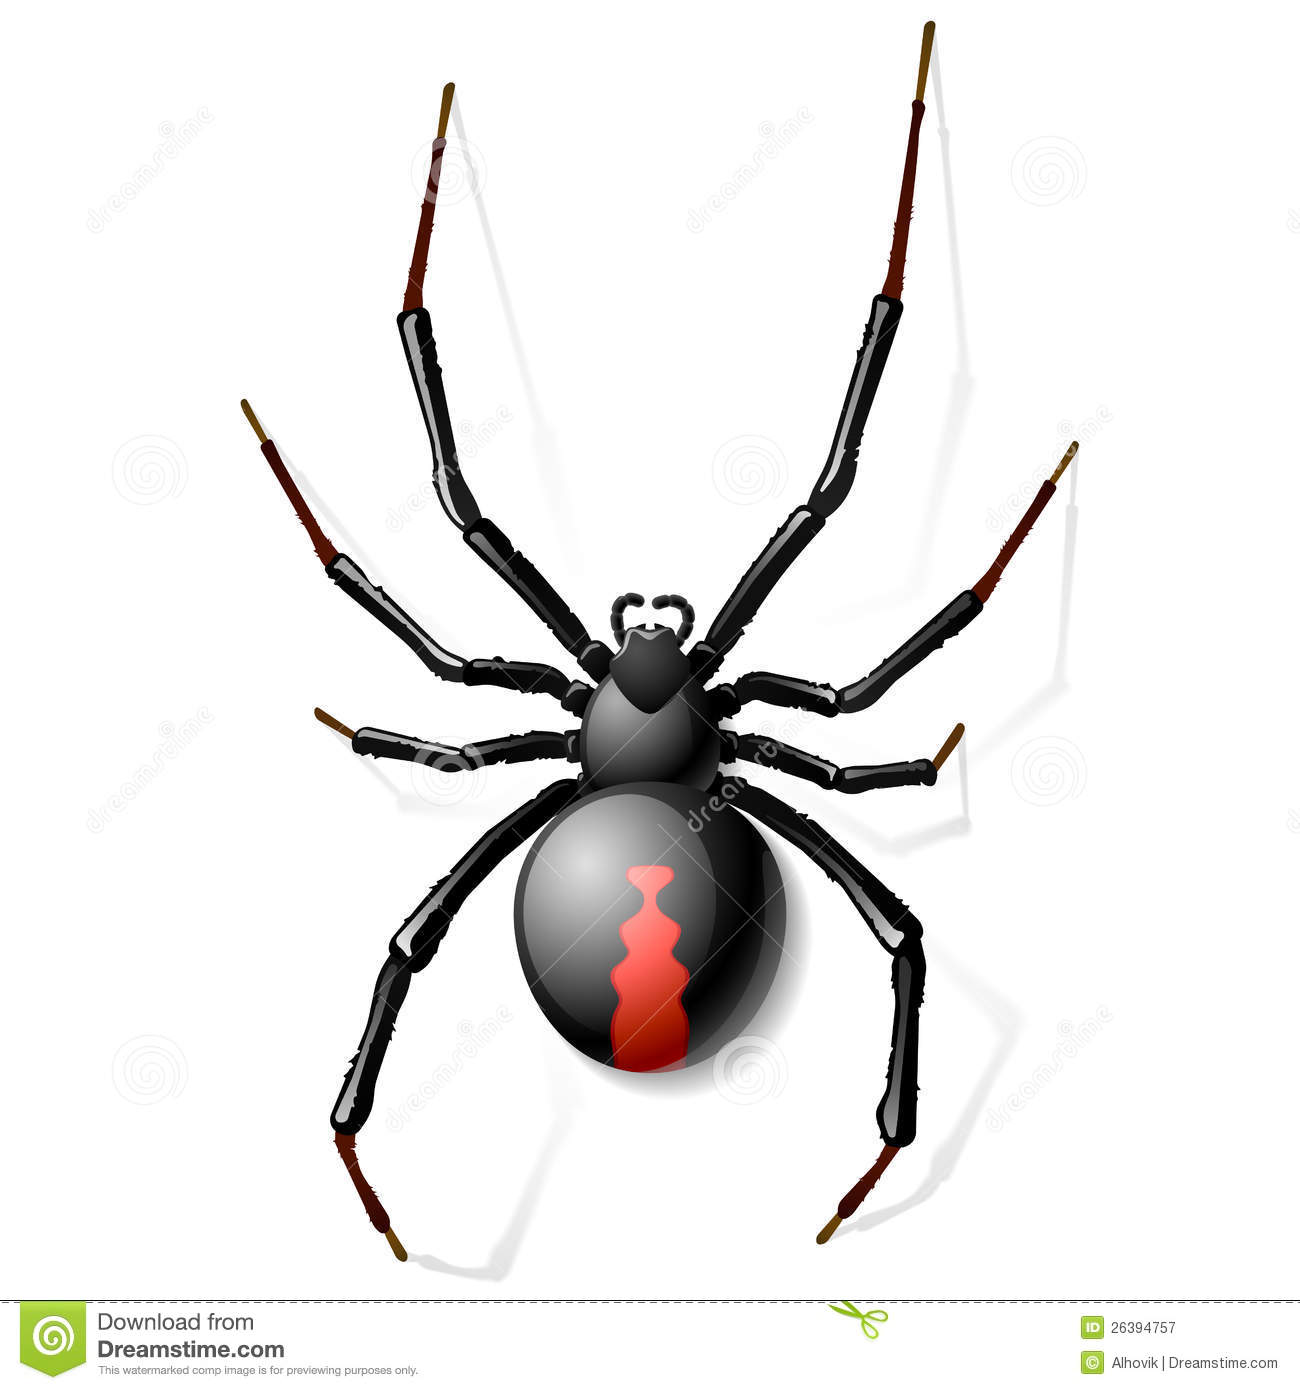 Redback Spider clipart #2, Download drawings